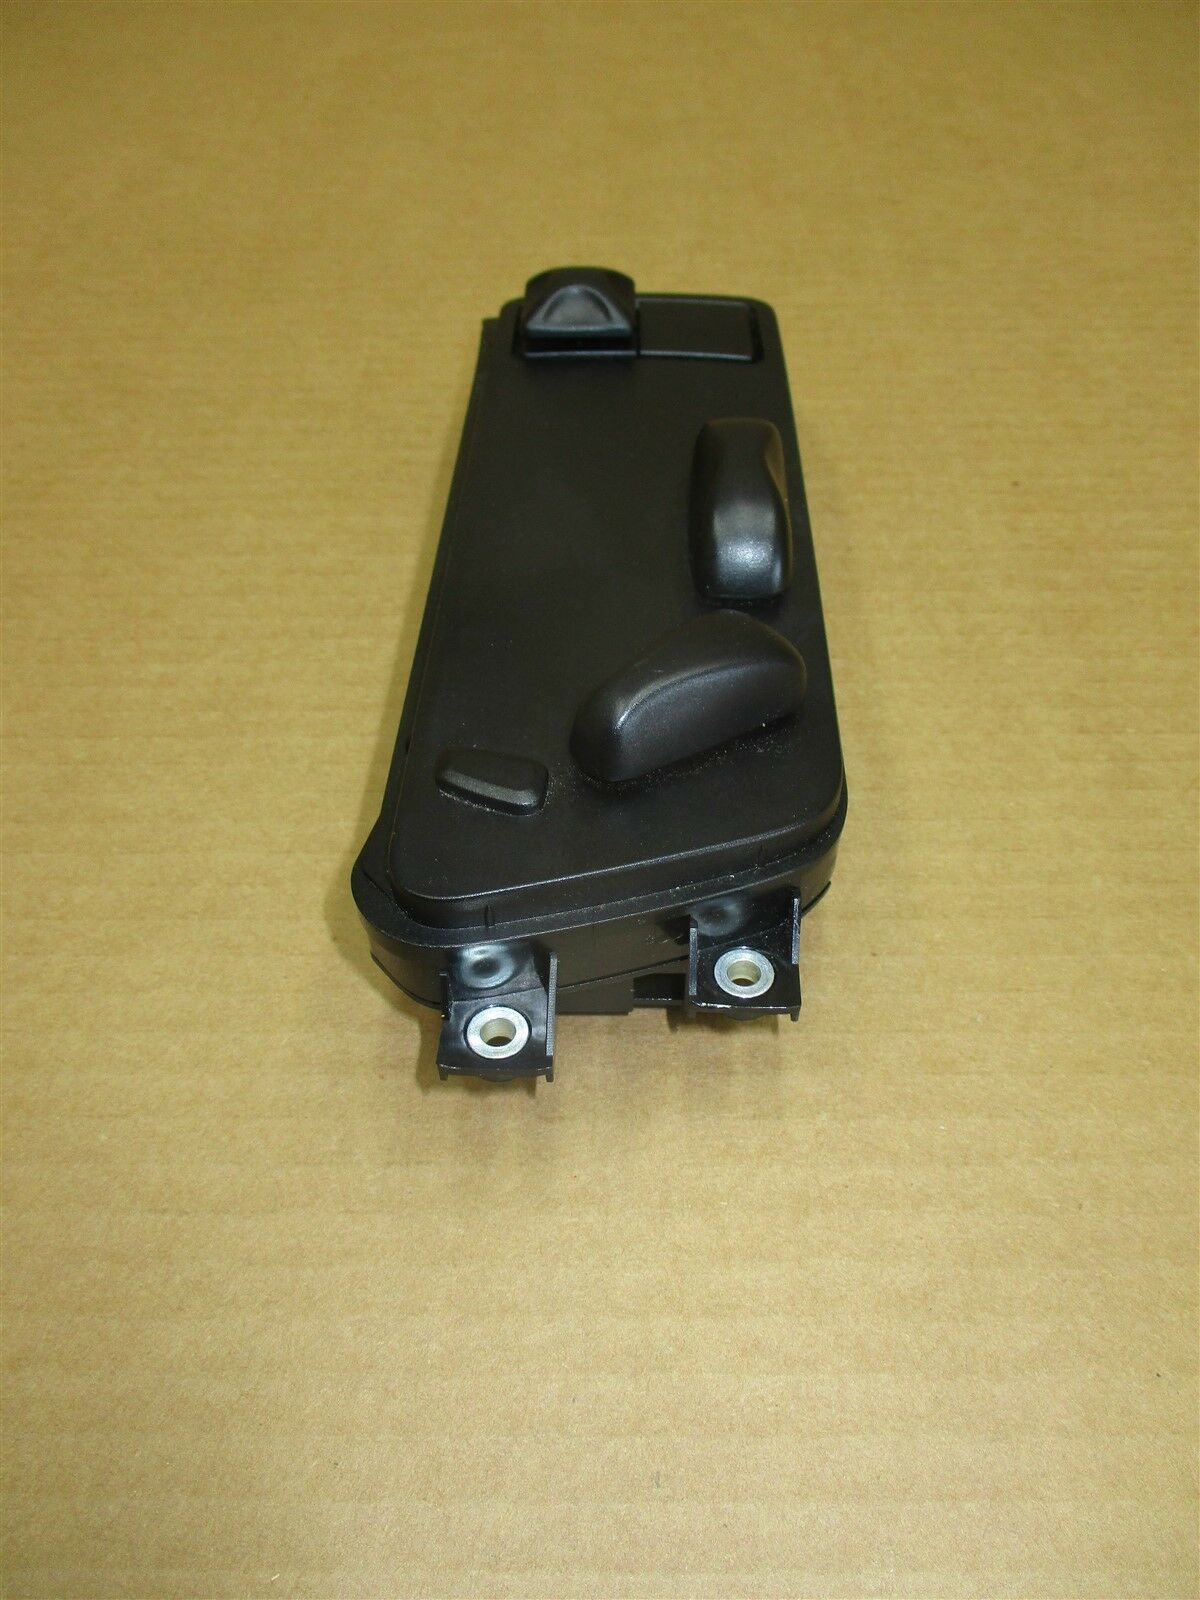 09 Cayenne AWD Porsche 957 R FRONT 12-WAY SEAT SWITCHES 7L5959766 RIGHT 64,753